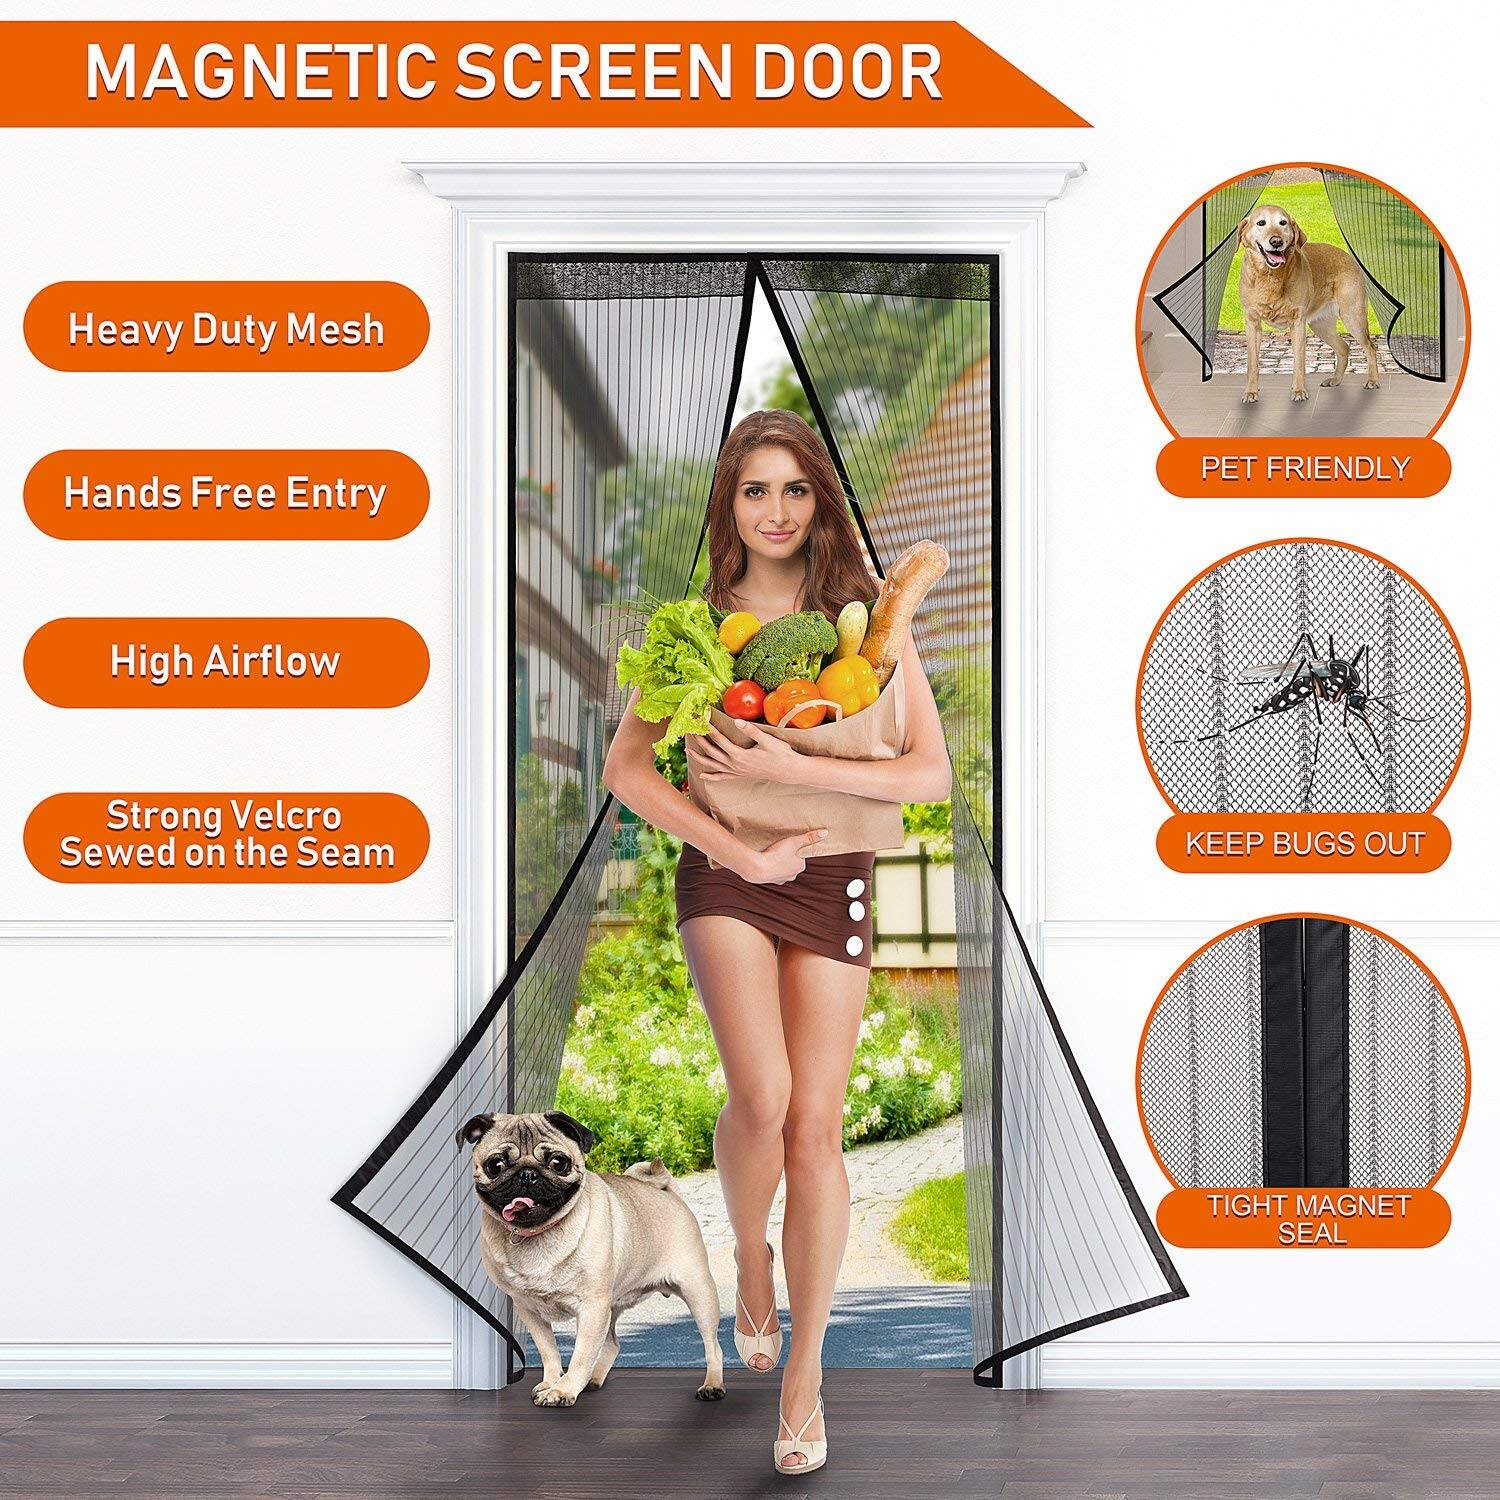 WENFENG Magnetic Screen Door, Heavy Duty Mesh Curtain with Full Frame Velcro Fits Door Size up to 34 x 82 inch Max - Black $7.99